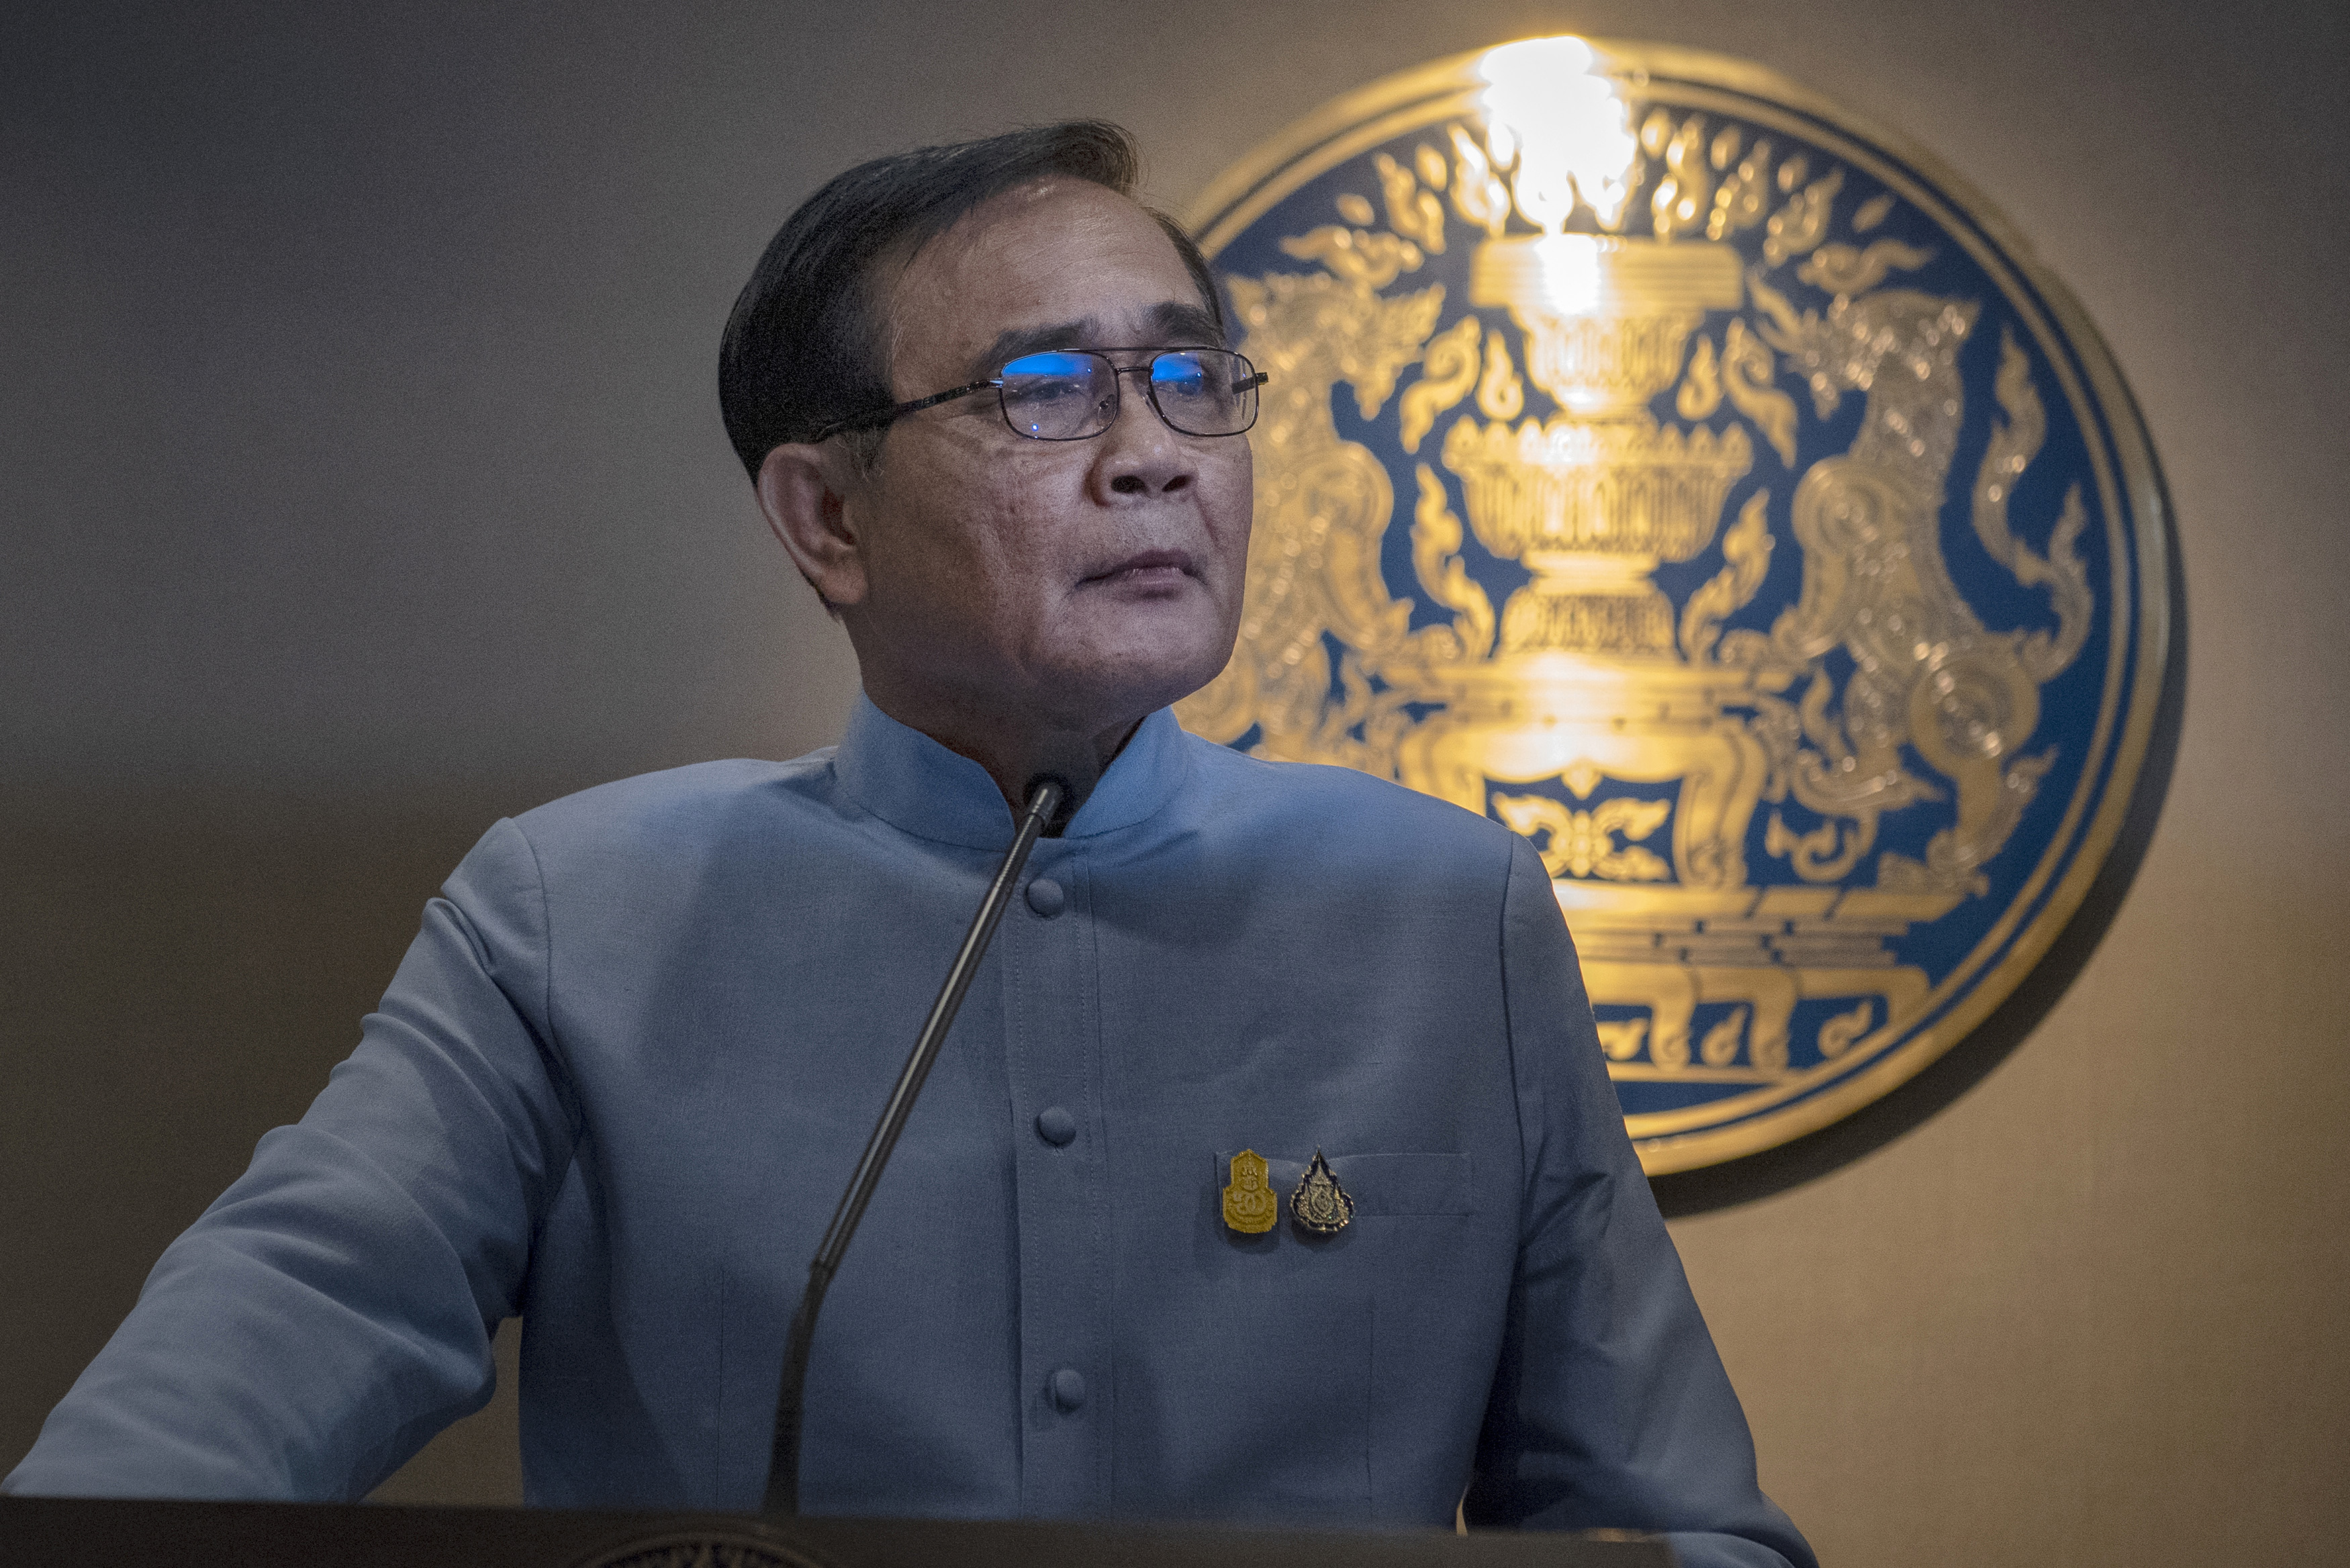 Thailand's Prime Minister, Prayut Chan-o-cha, speaks to members of the press in Bangkok, Thailand, on March 26, 2019.